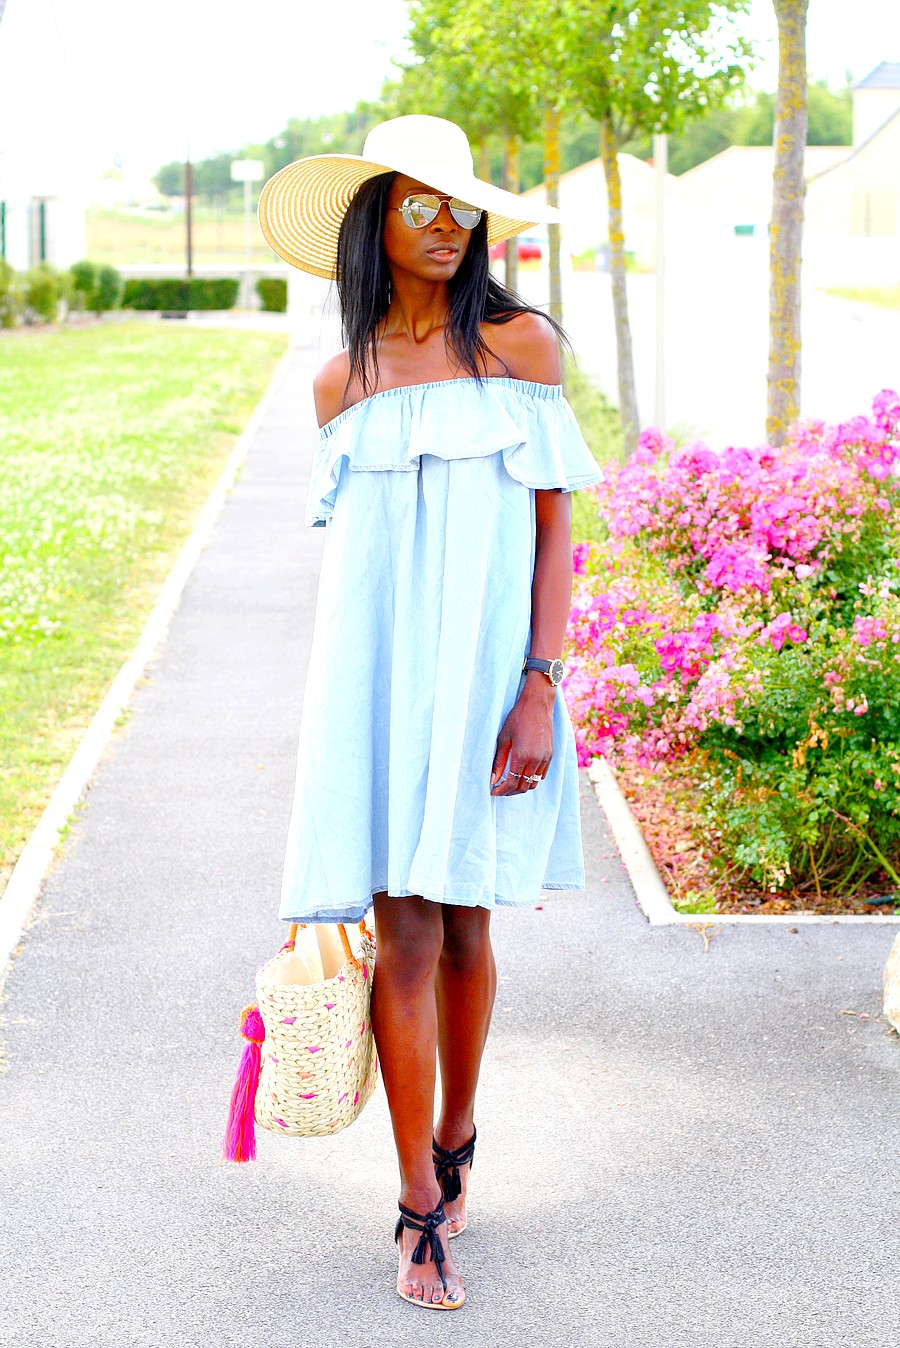 off-shoulder-denim-dress-asos-wide-brim-hat-epaules-denudees-sac-plage-etam-sandales-pompoms